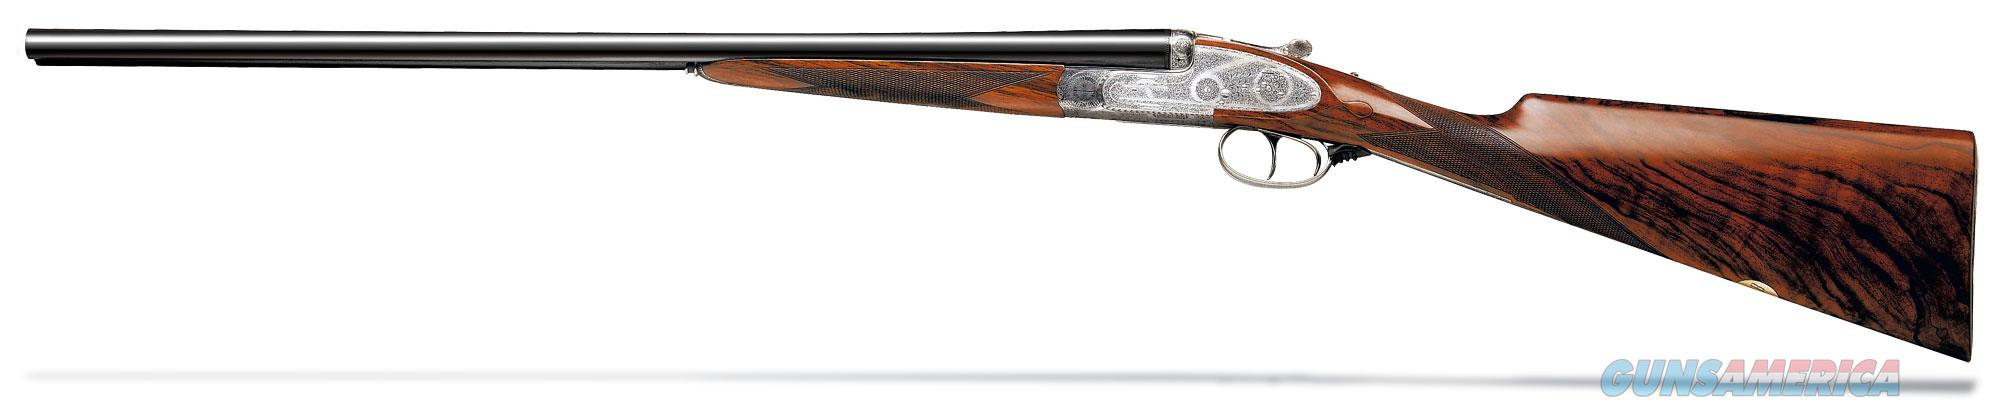 "Grulla Royal 20GA 28"" bbl H&H Engraved  Guns > Shotguns > Grulla Shotguns"